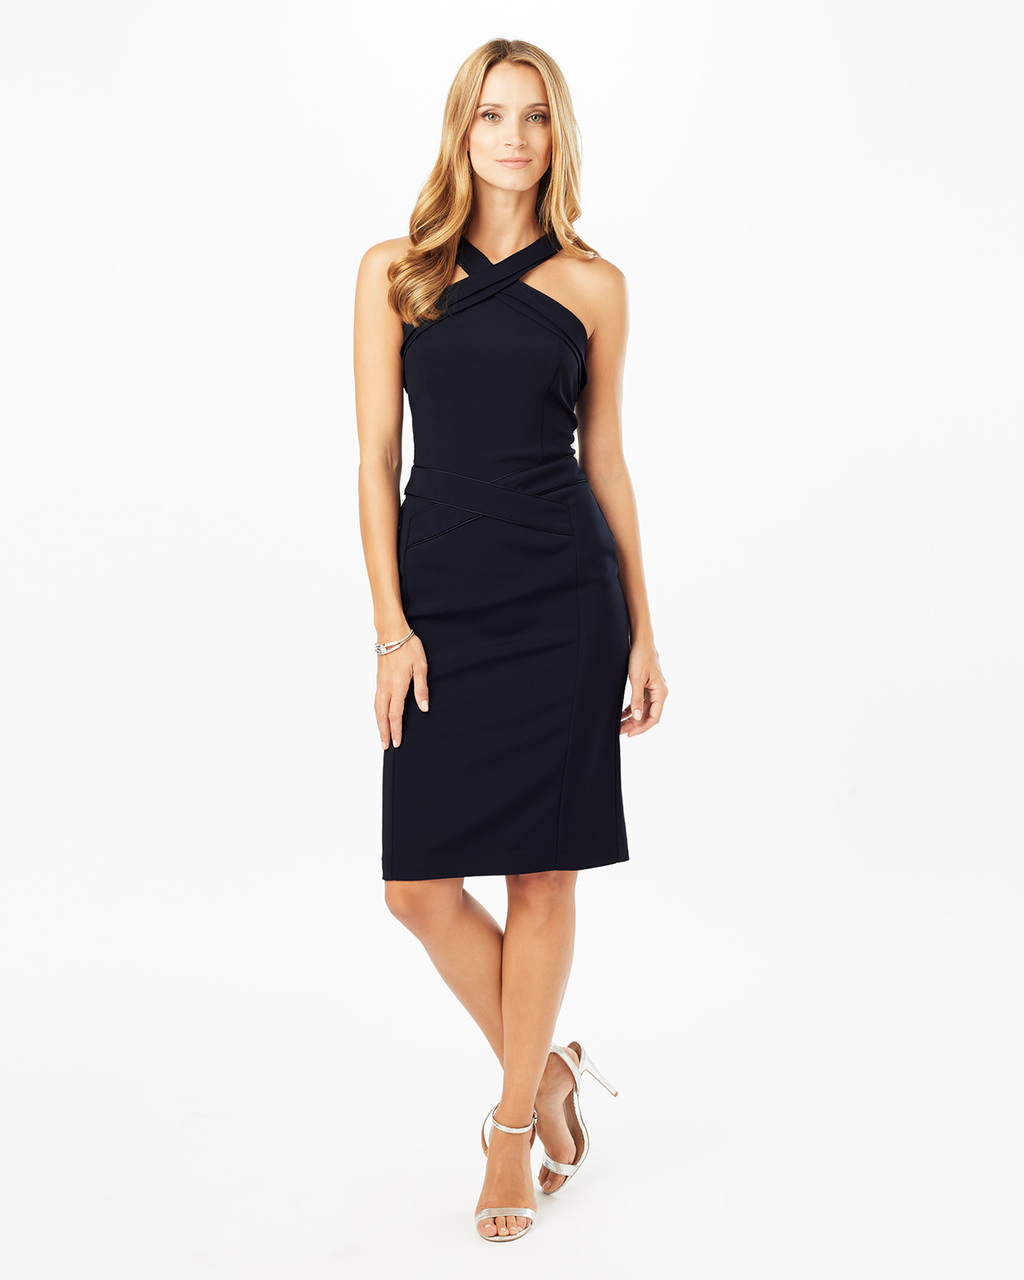 Abia Dress - style: shift; fit: tailored/fitted; pattern: plain; sleeve style: sleeveless; predominant colour: navy; occasions: evening, occasion; length: on the knee; fibres: polyester/polyamide - 100%; sleeve length: sleeveless; texture group: crepes; pattern type: fabric; neckline: high halter neck; season: a/w 2016; wardrobe: event